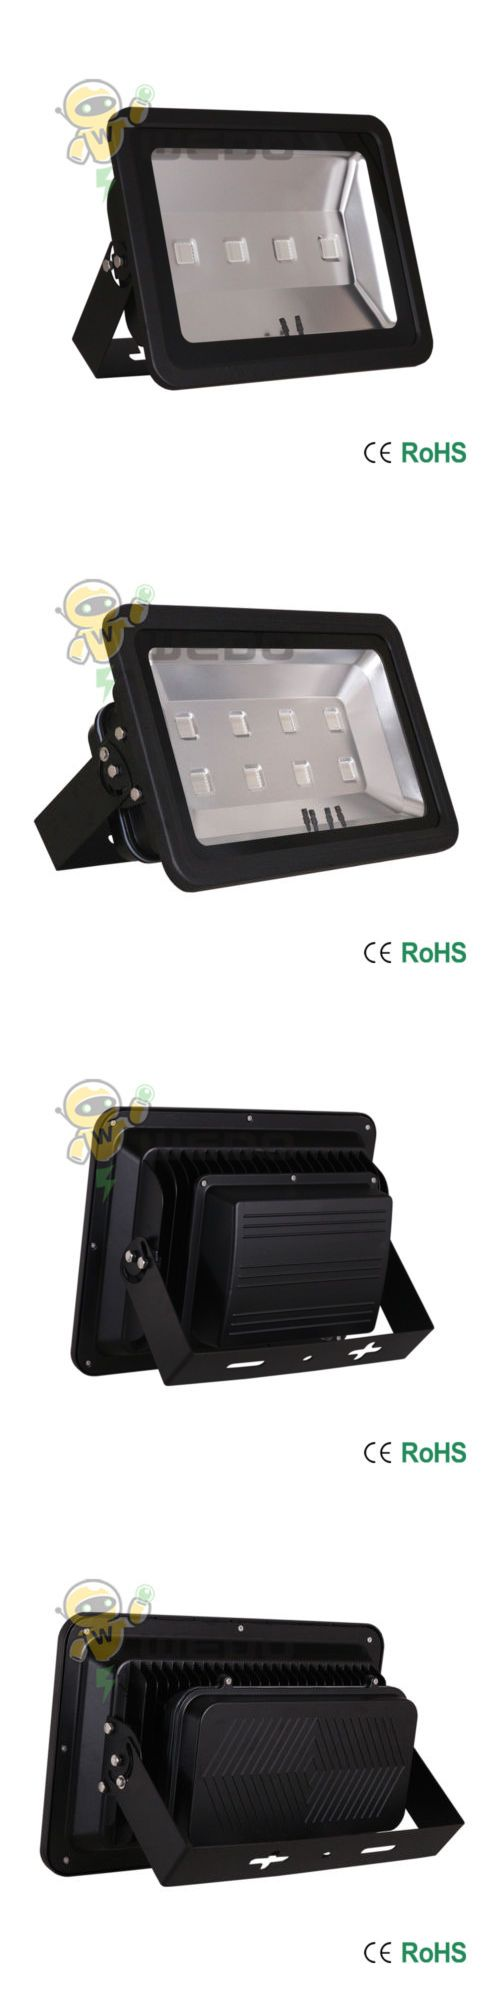 Outdoor Security and Floodlights 183393: Us Stock! 400W Rgb Led Flood Light Lamp Black Shell Backpack Outdoor Ip65 -> BUY IT NOW ONLY: $188.98 on eBay!